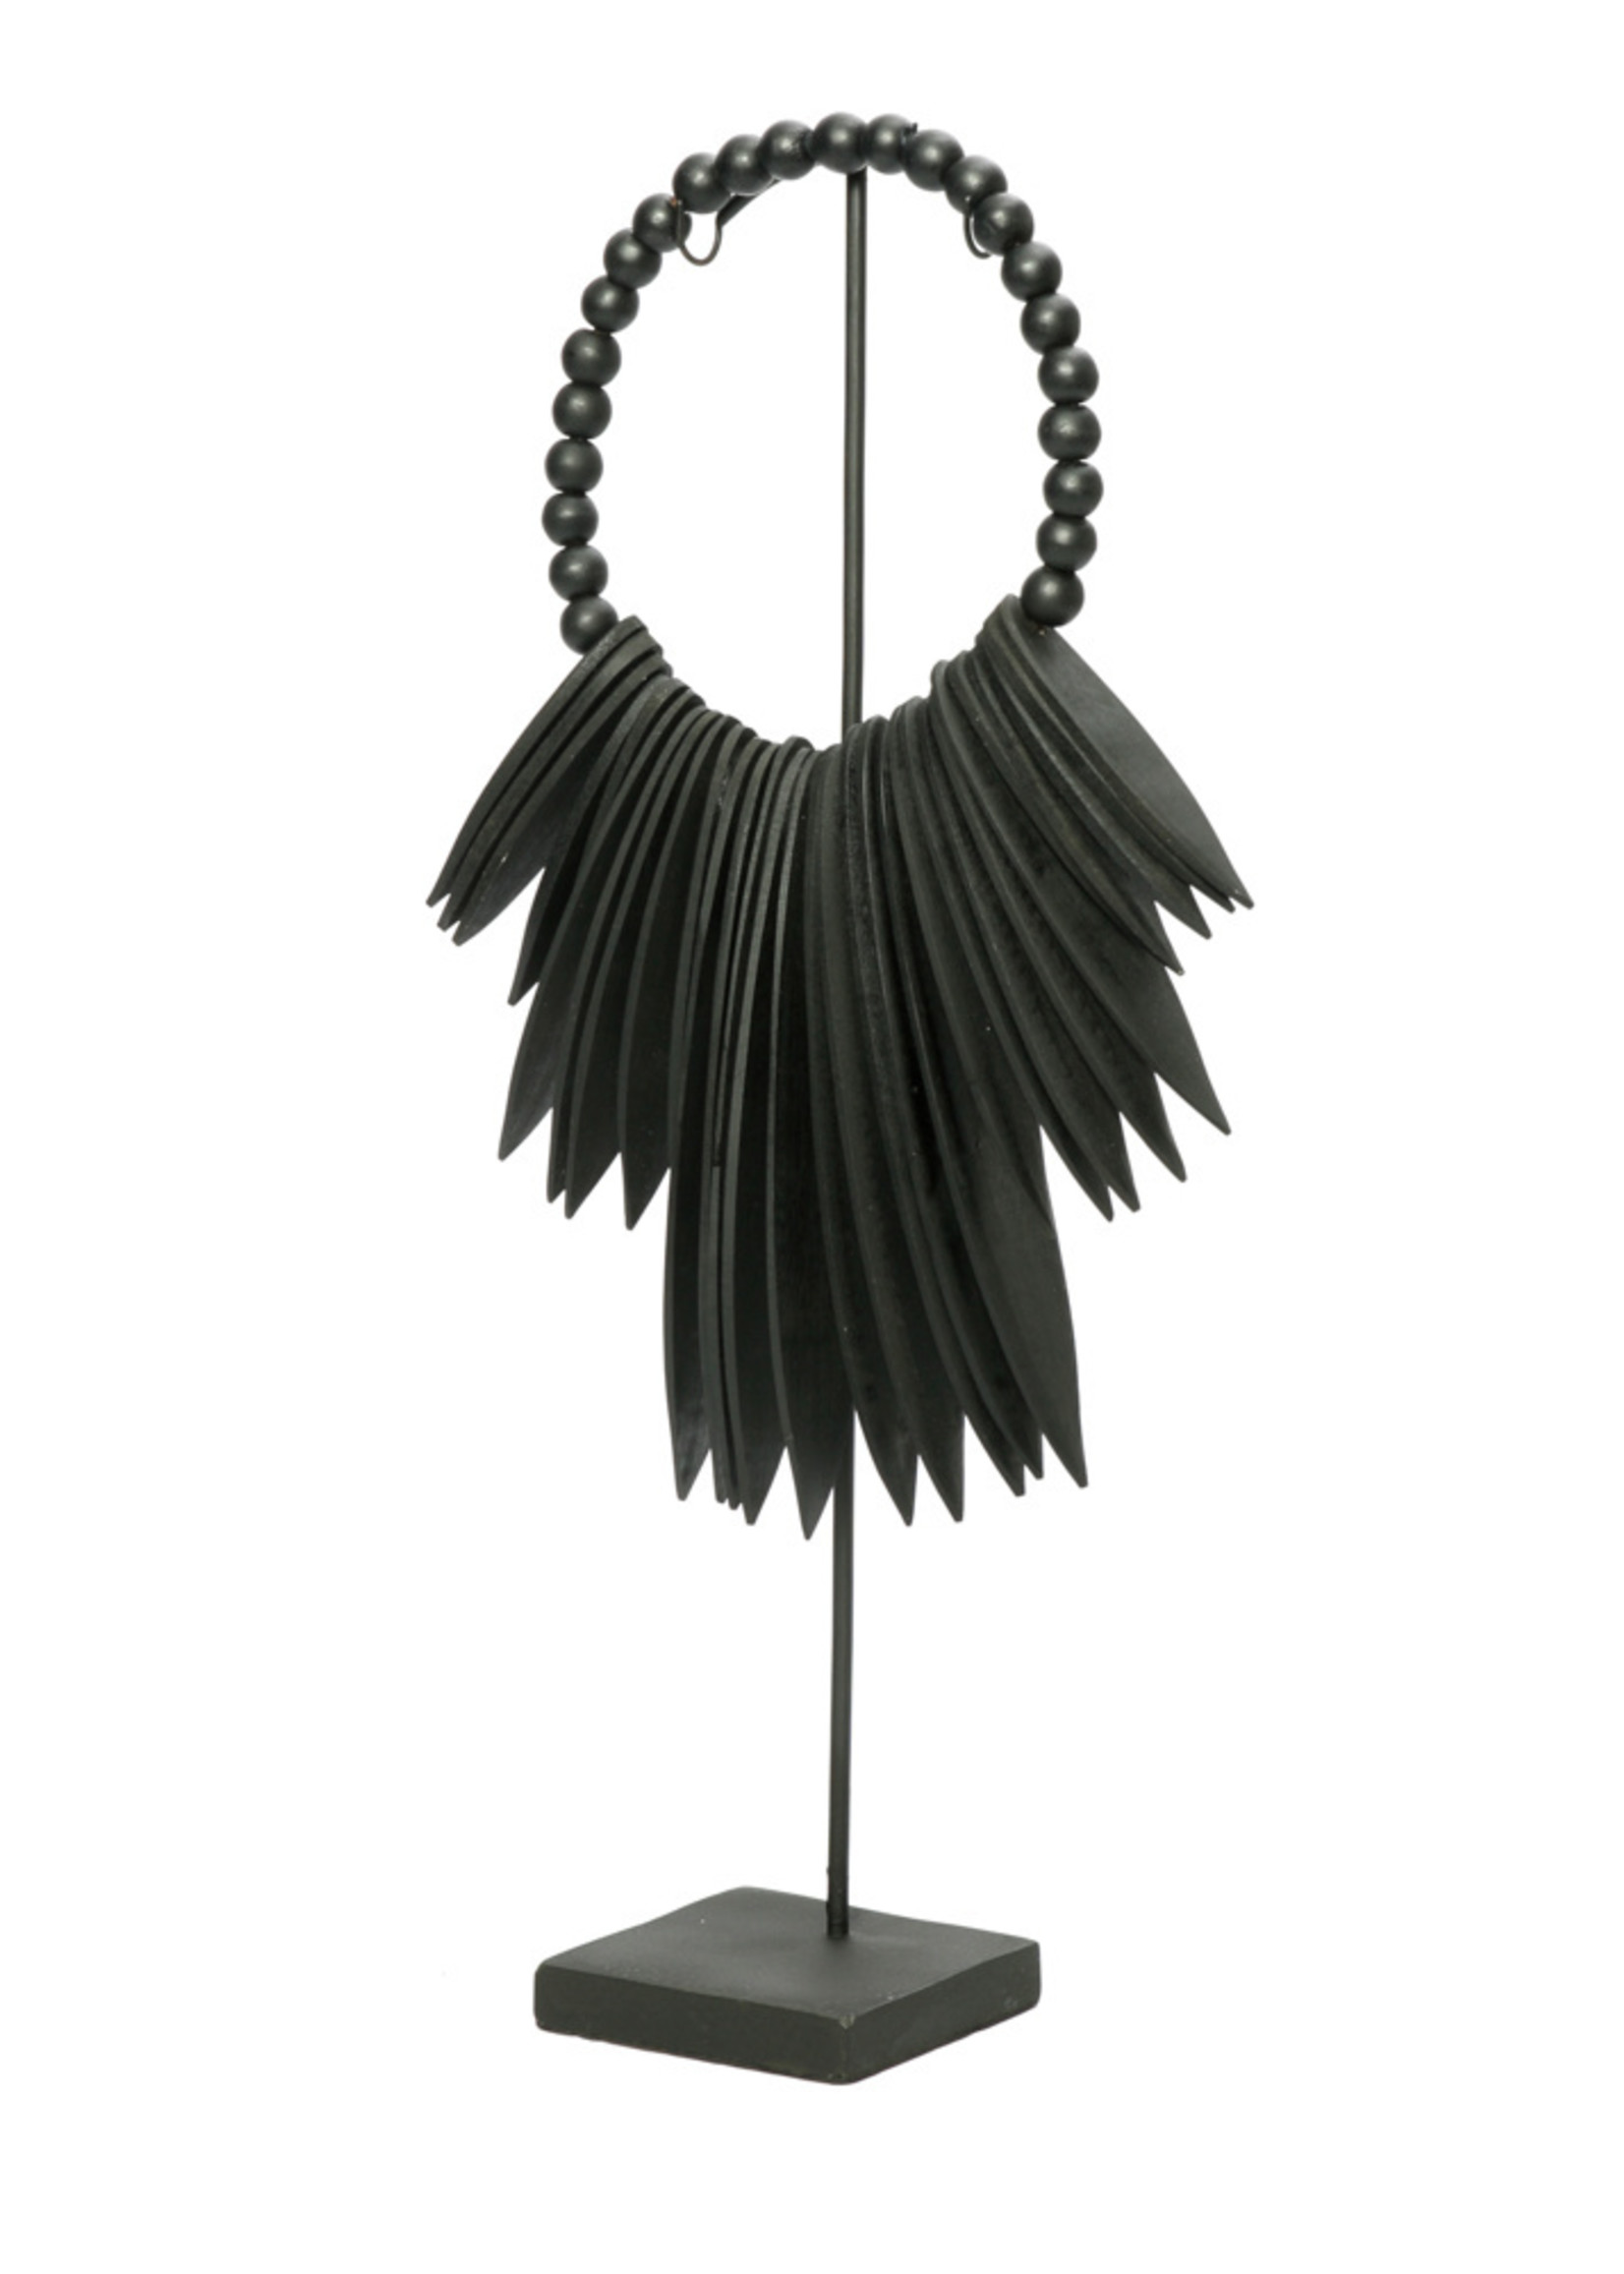 The Wooden Cuttlefish on Stand - Black - S